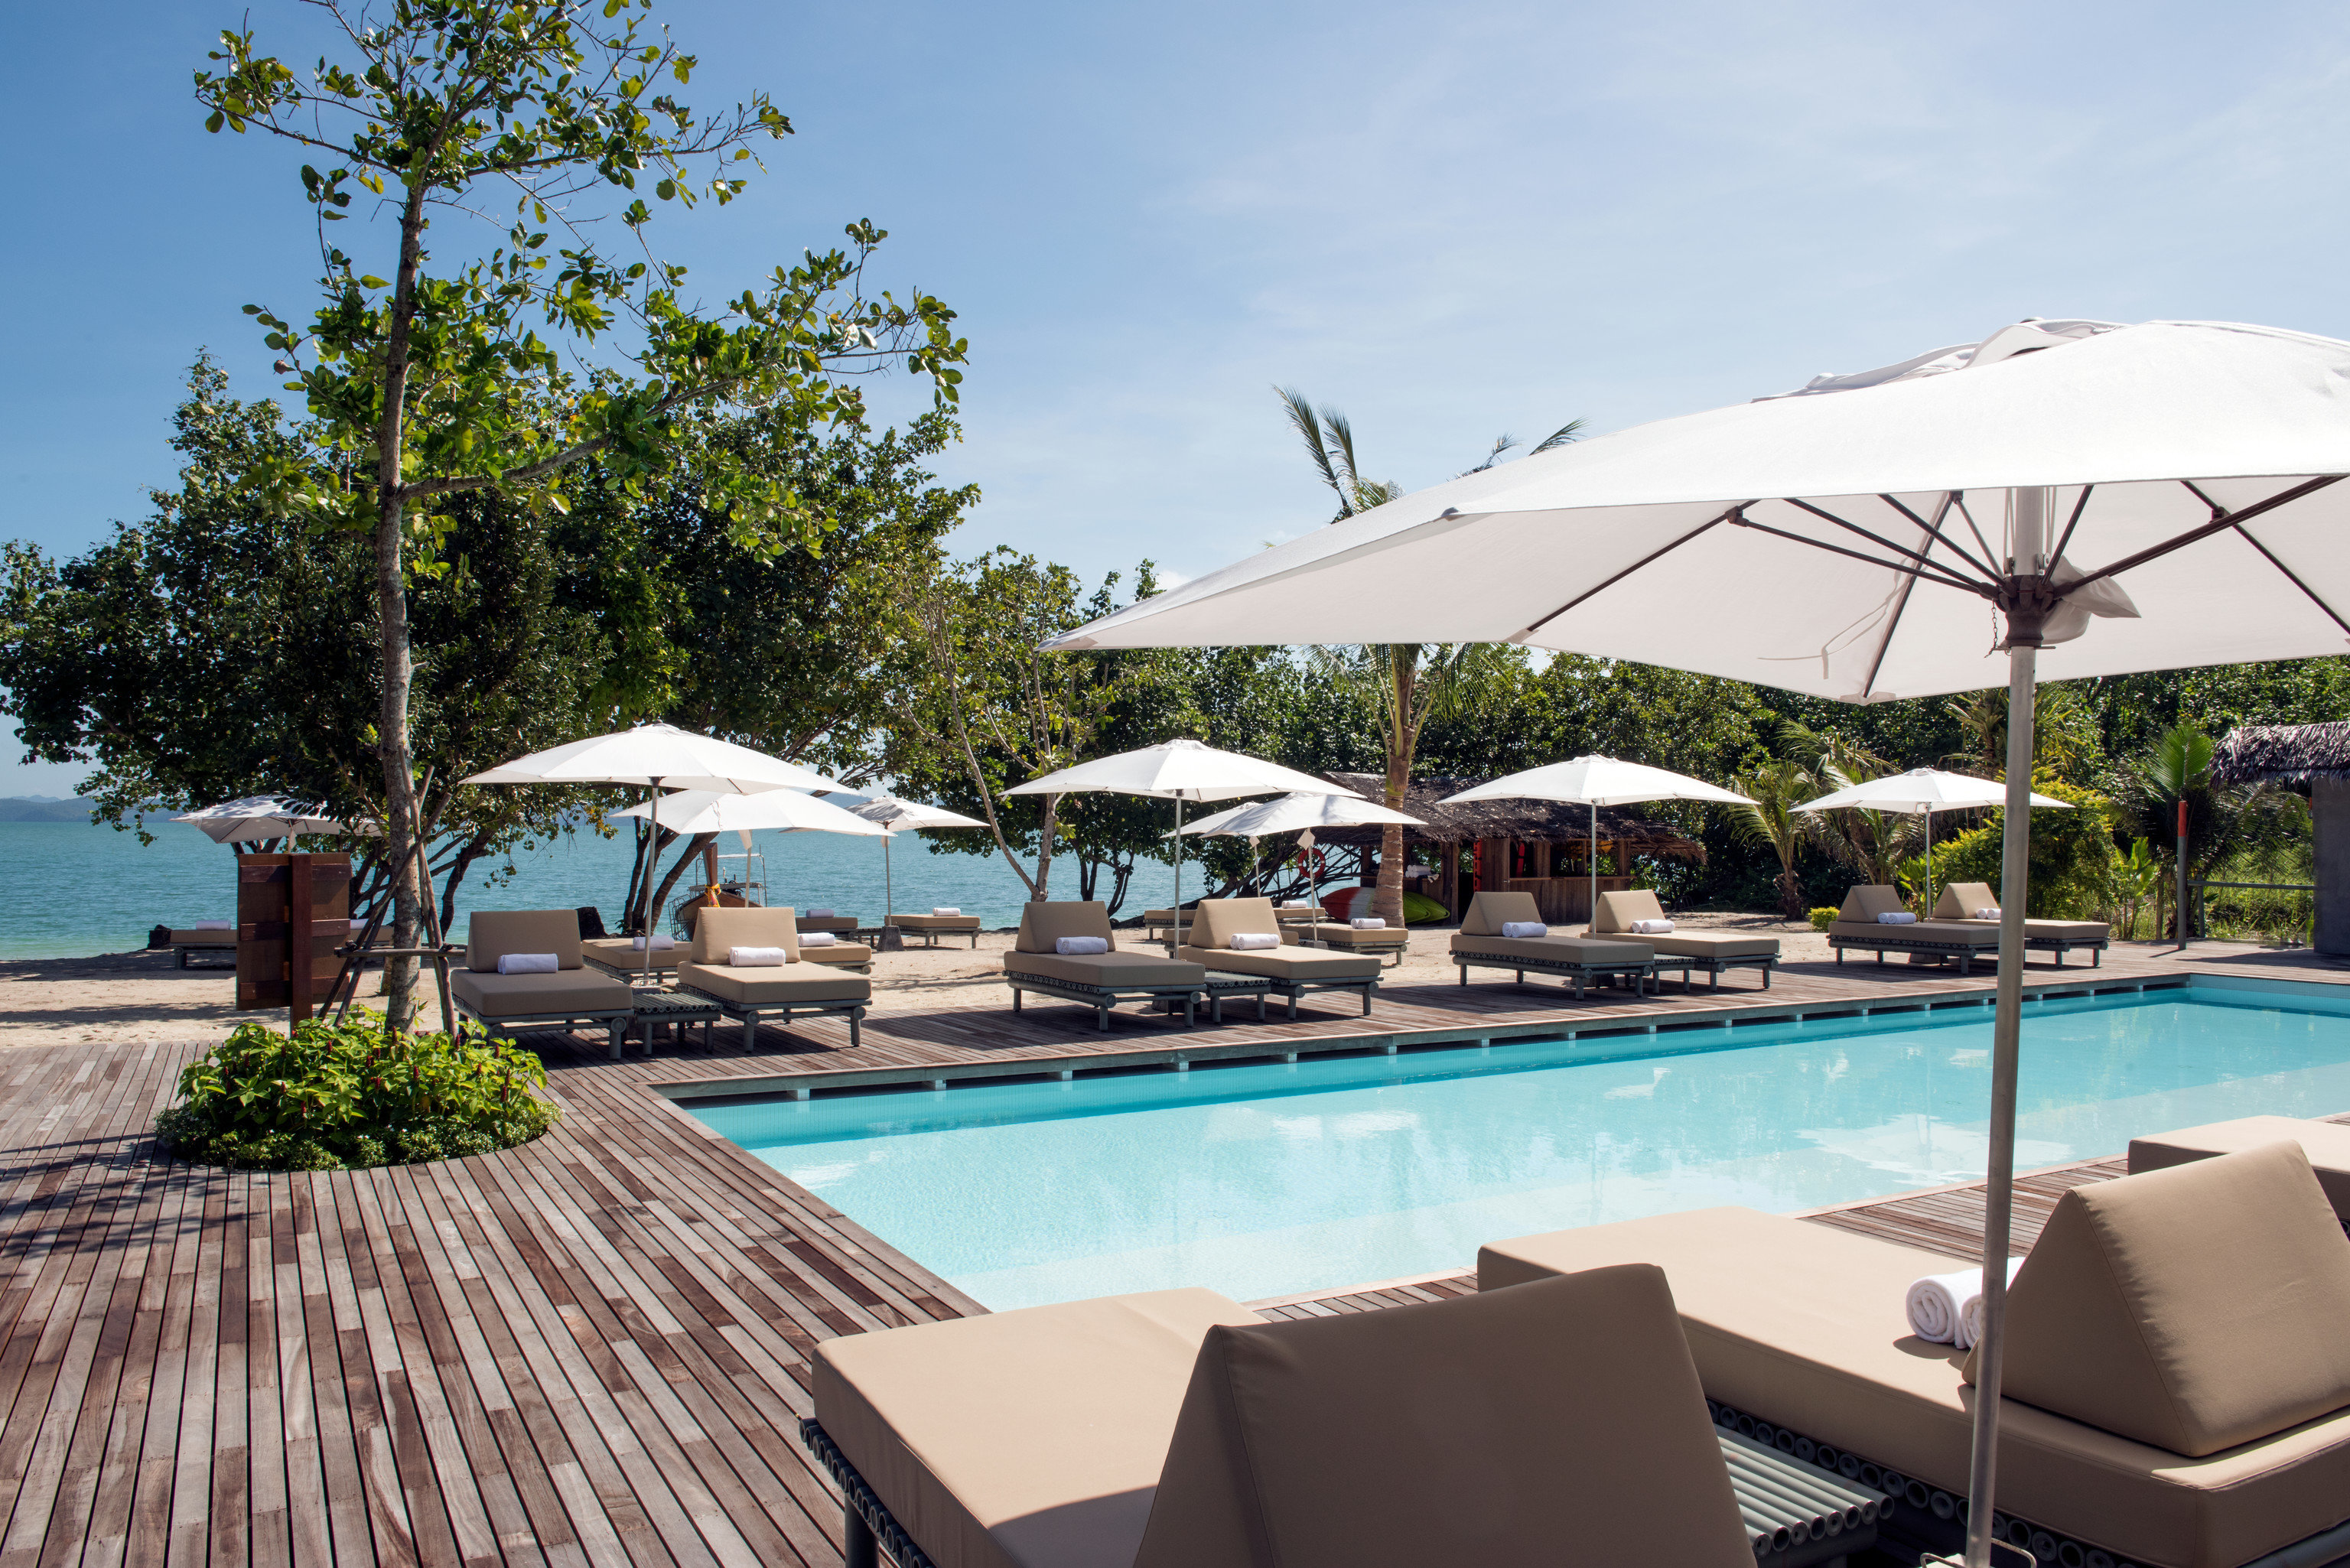 Beach Hotels Phuket Thailand sky outdoor tree umbrella Resort swimming pool property leisure vacation real estate hotel tourism resort town estate shade Villa outdoor structure water amenity open set furniture day several